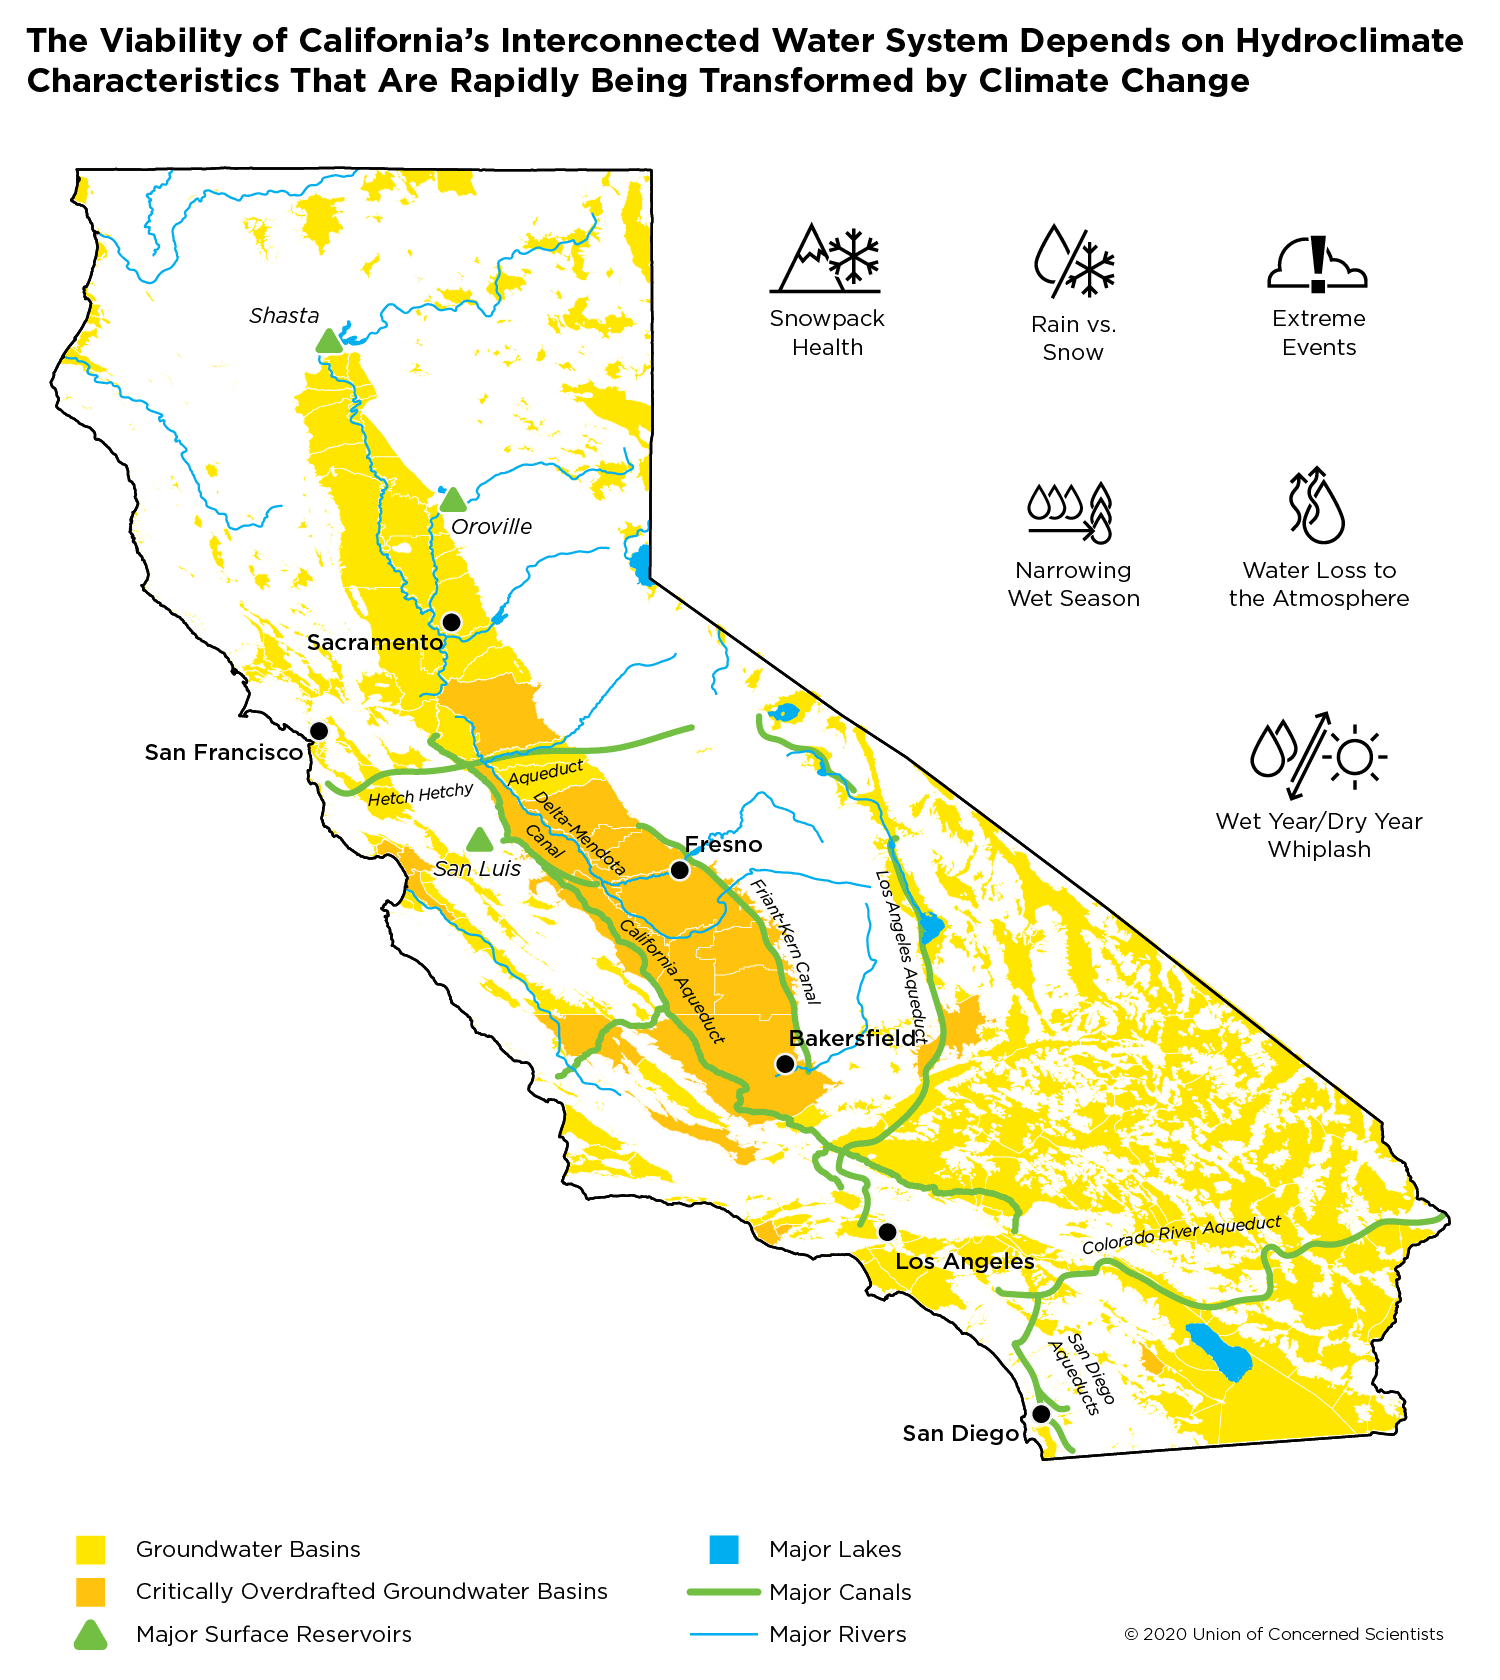 Map of California's interconnected water system and hydroclimate characteristics